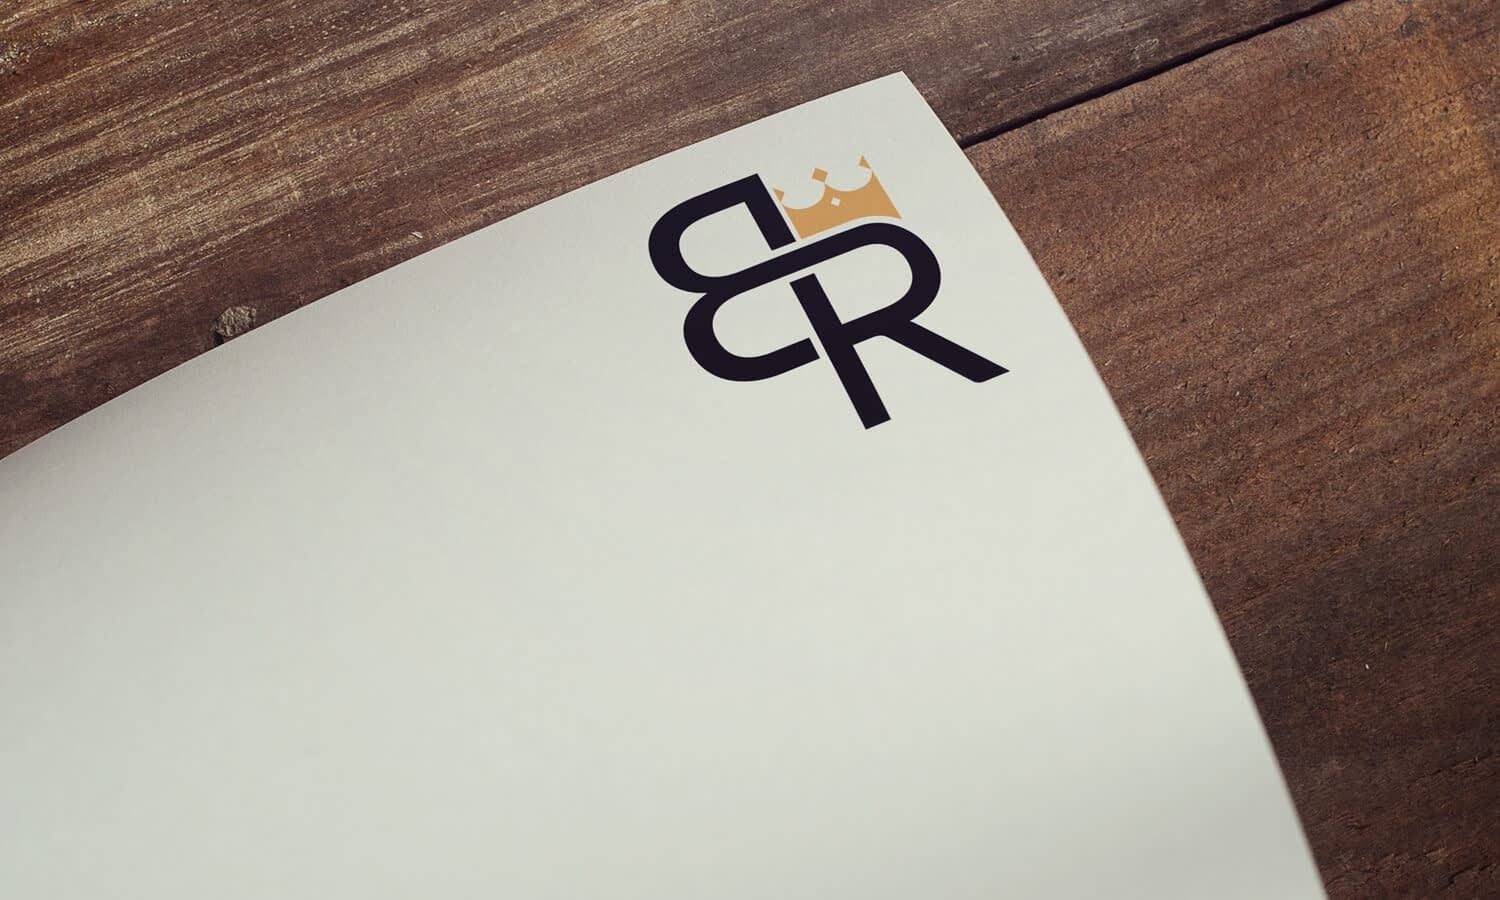 BR monogram logo with crown